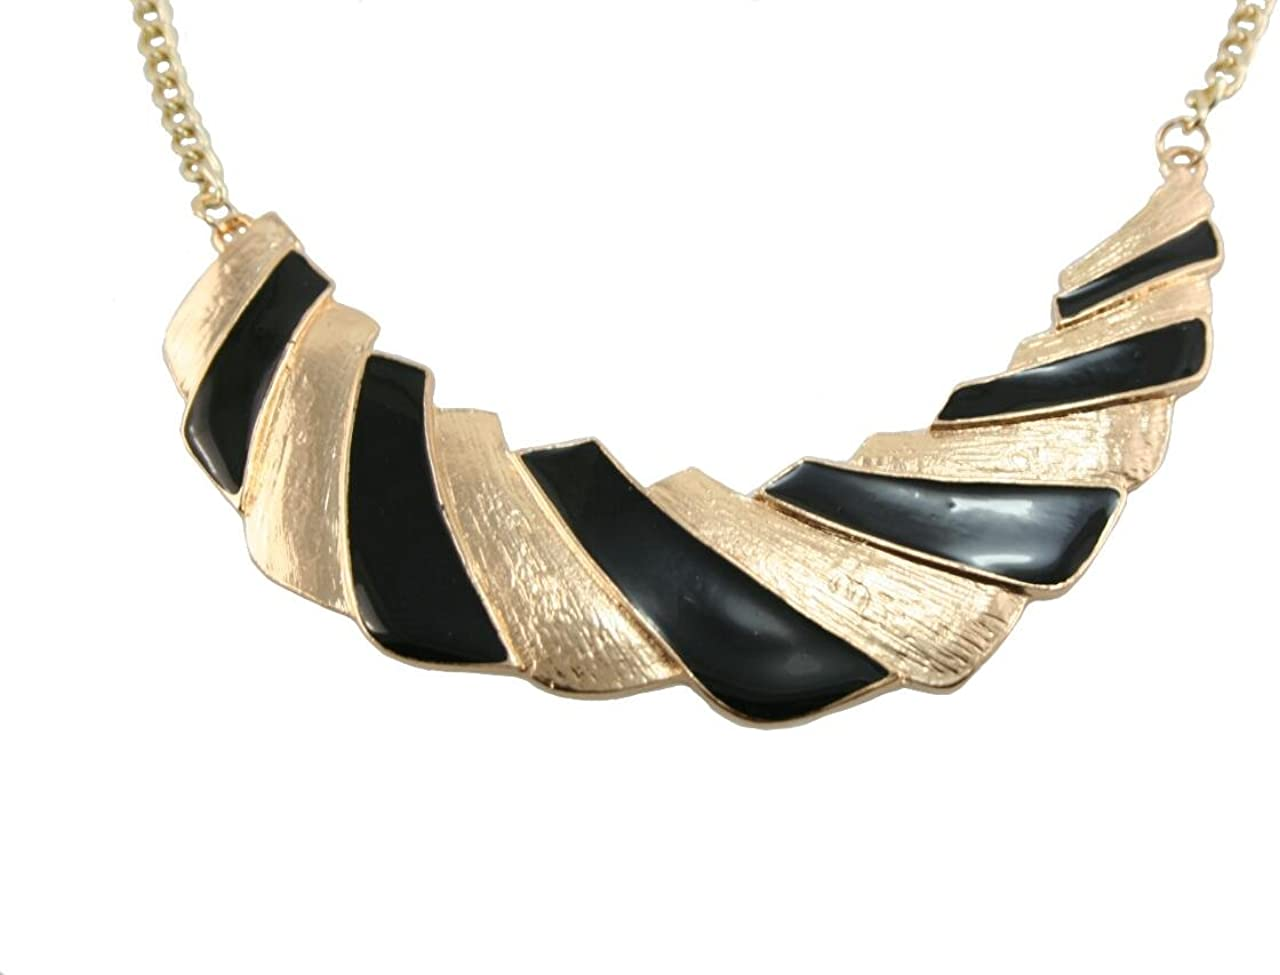 Gold and Black Bohemia Style Clavicle Collar Necklace